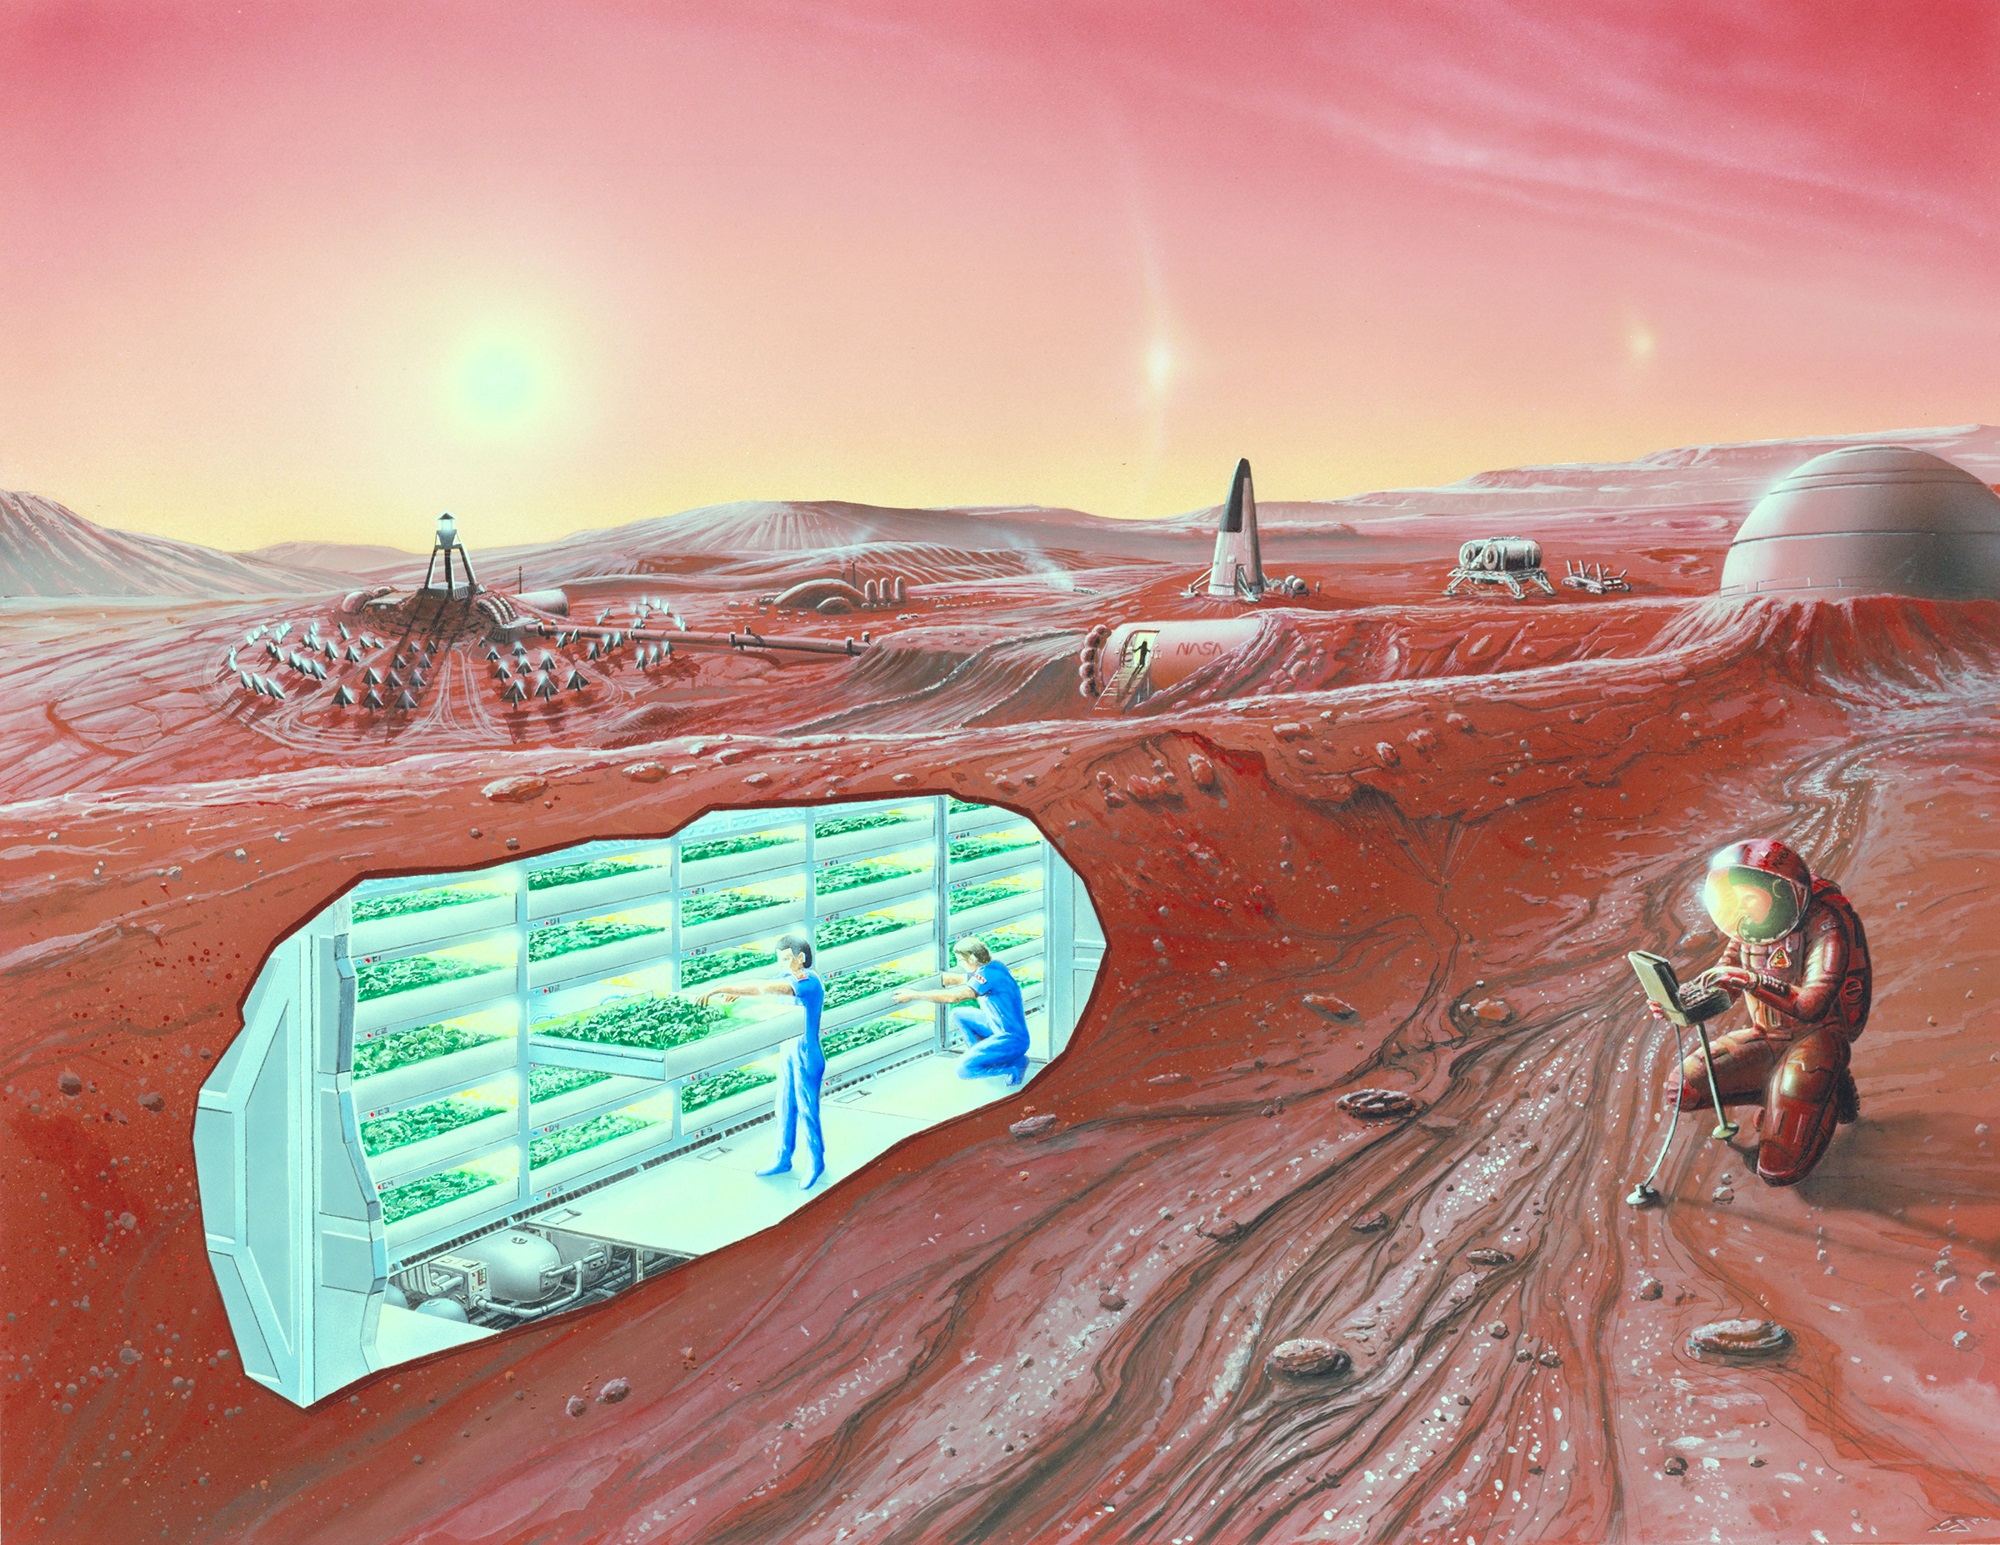 colonizing mars Training in antarctica or on the international space station won't provide adequate preparation for human settlement on mars, according t.